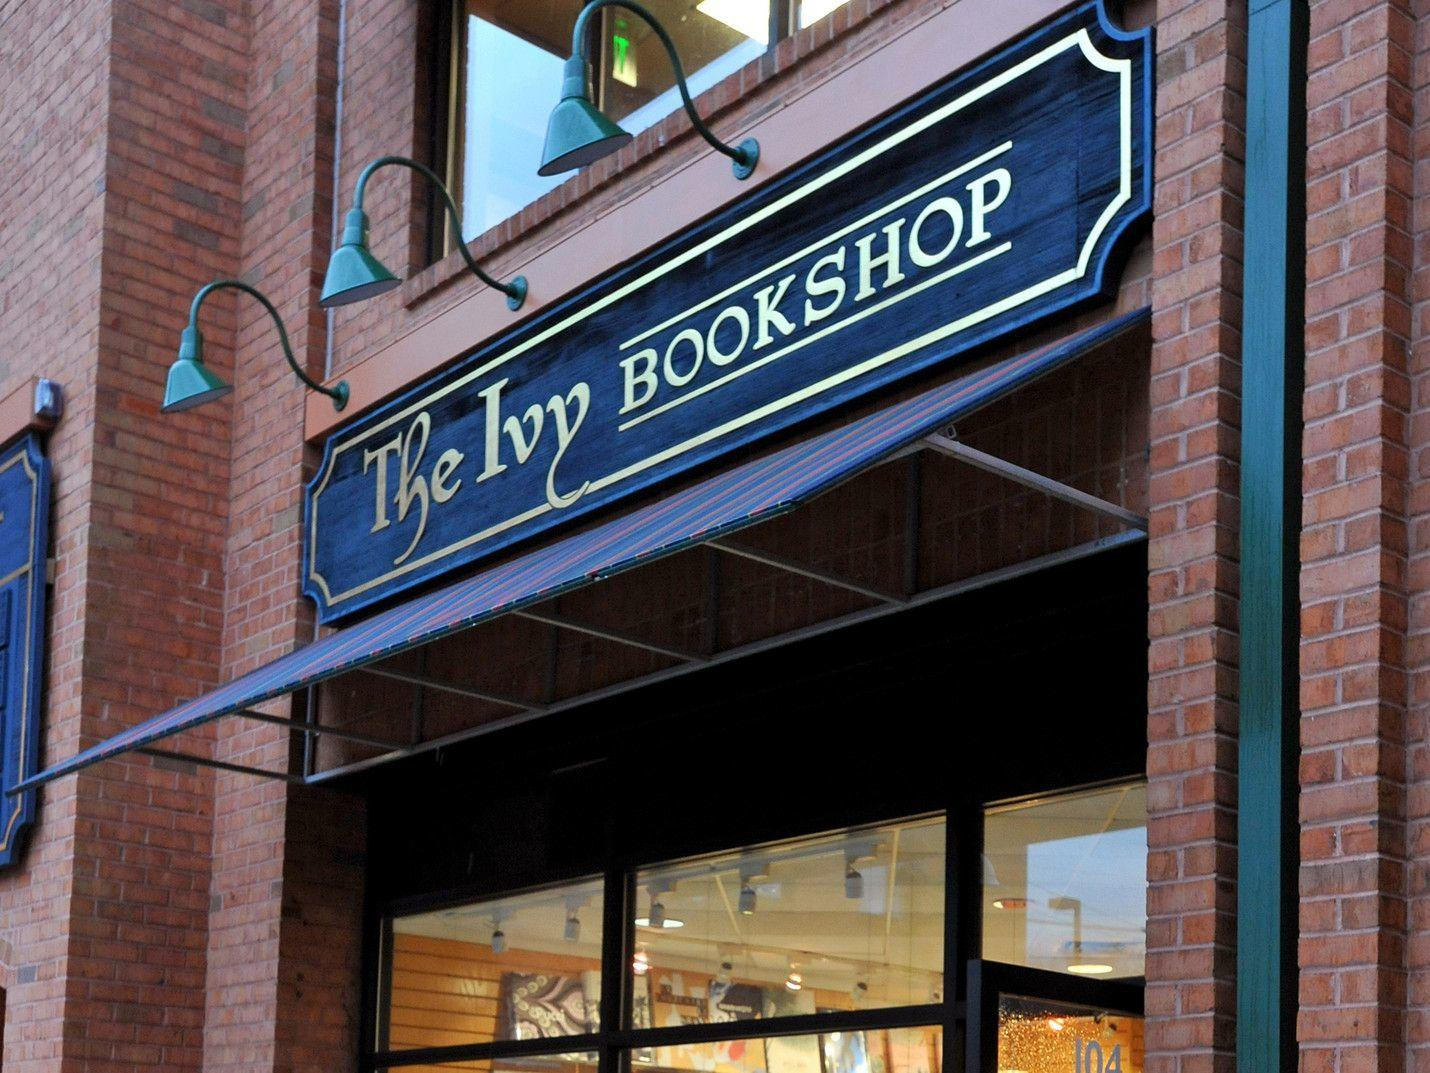 The Ivy Bookshop opens up in new location in Baltimore City